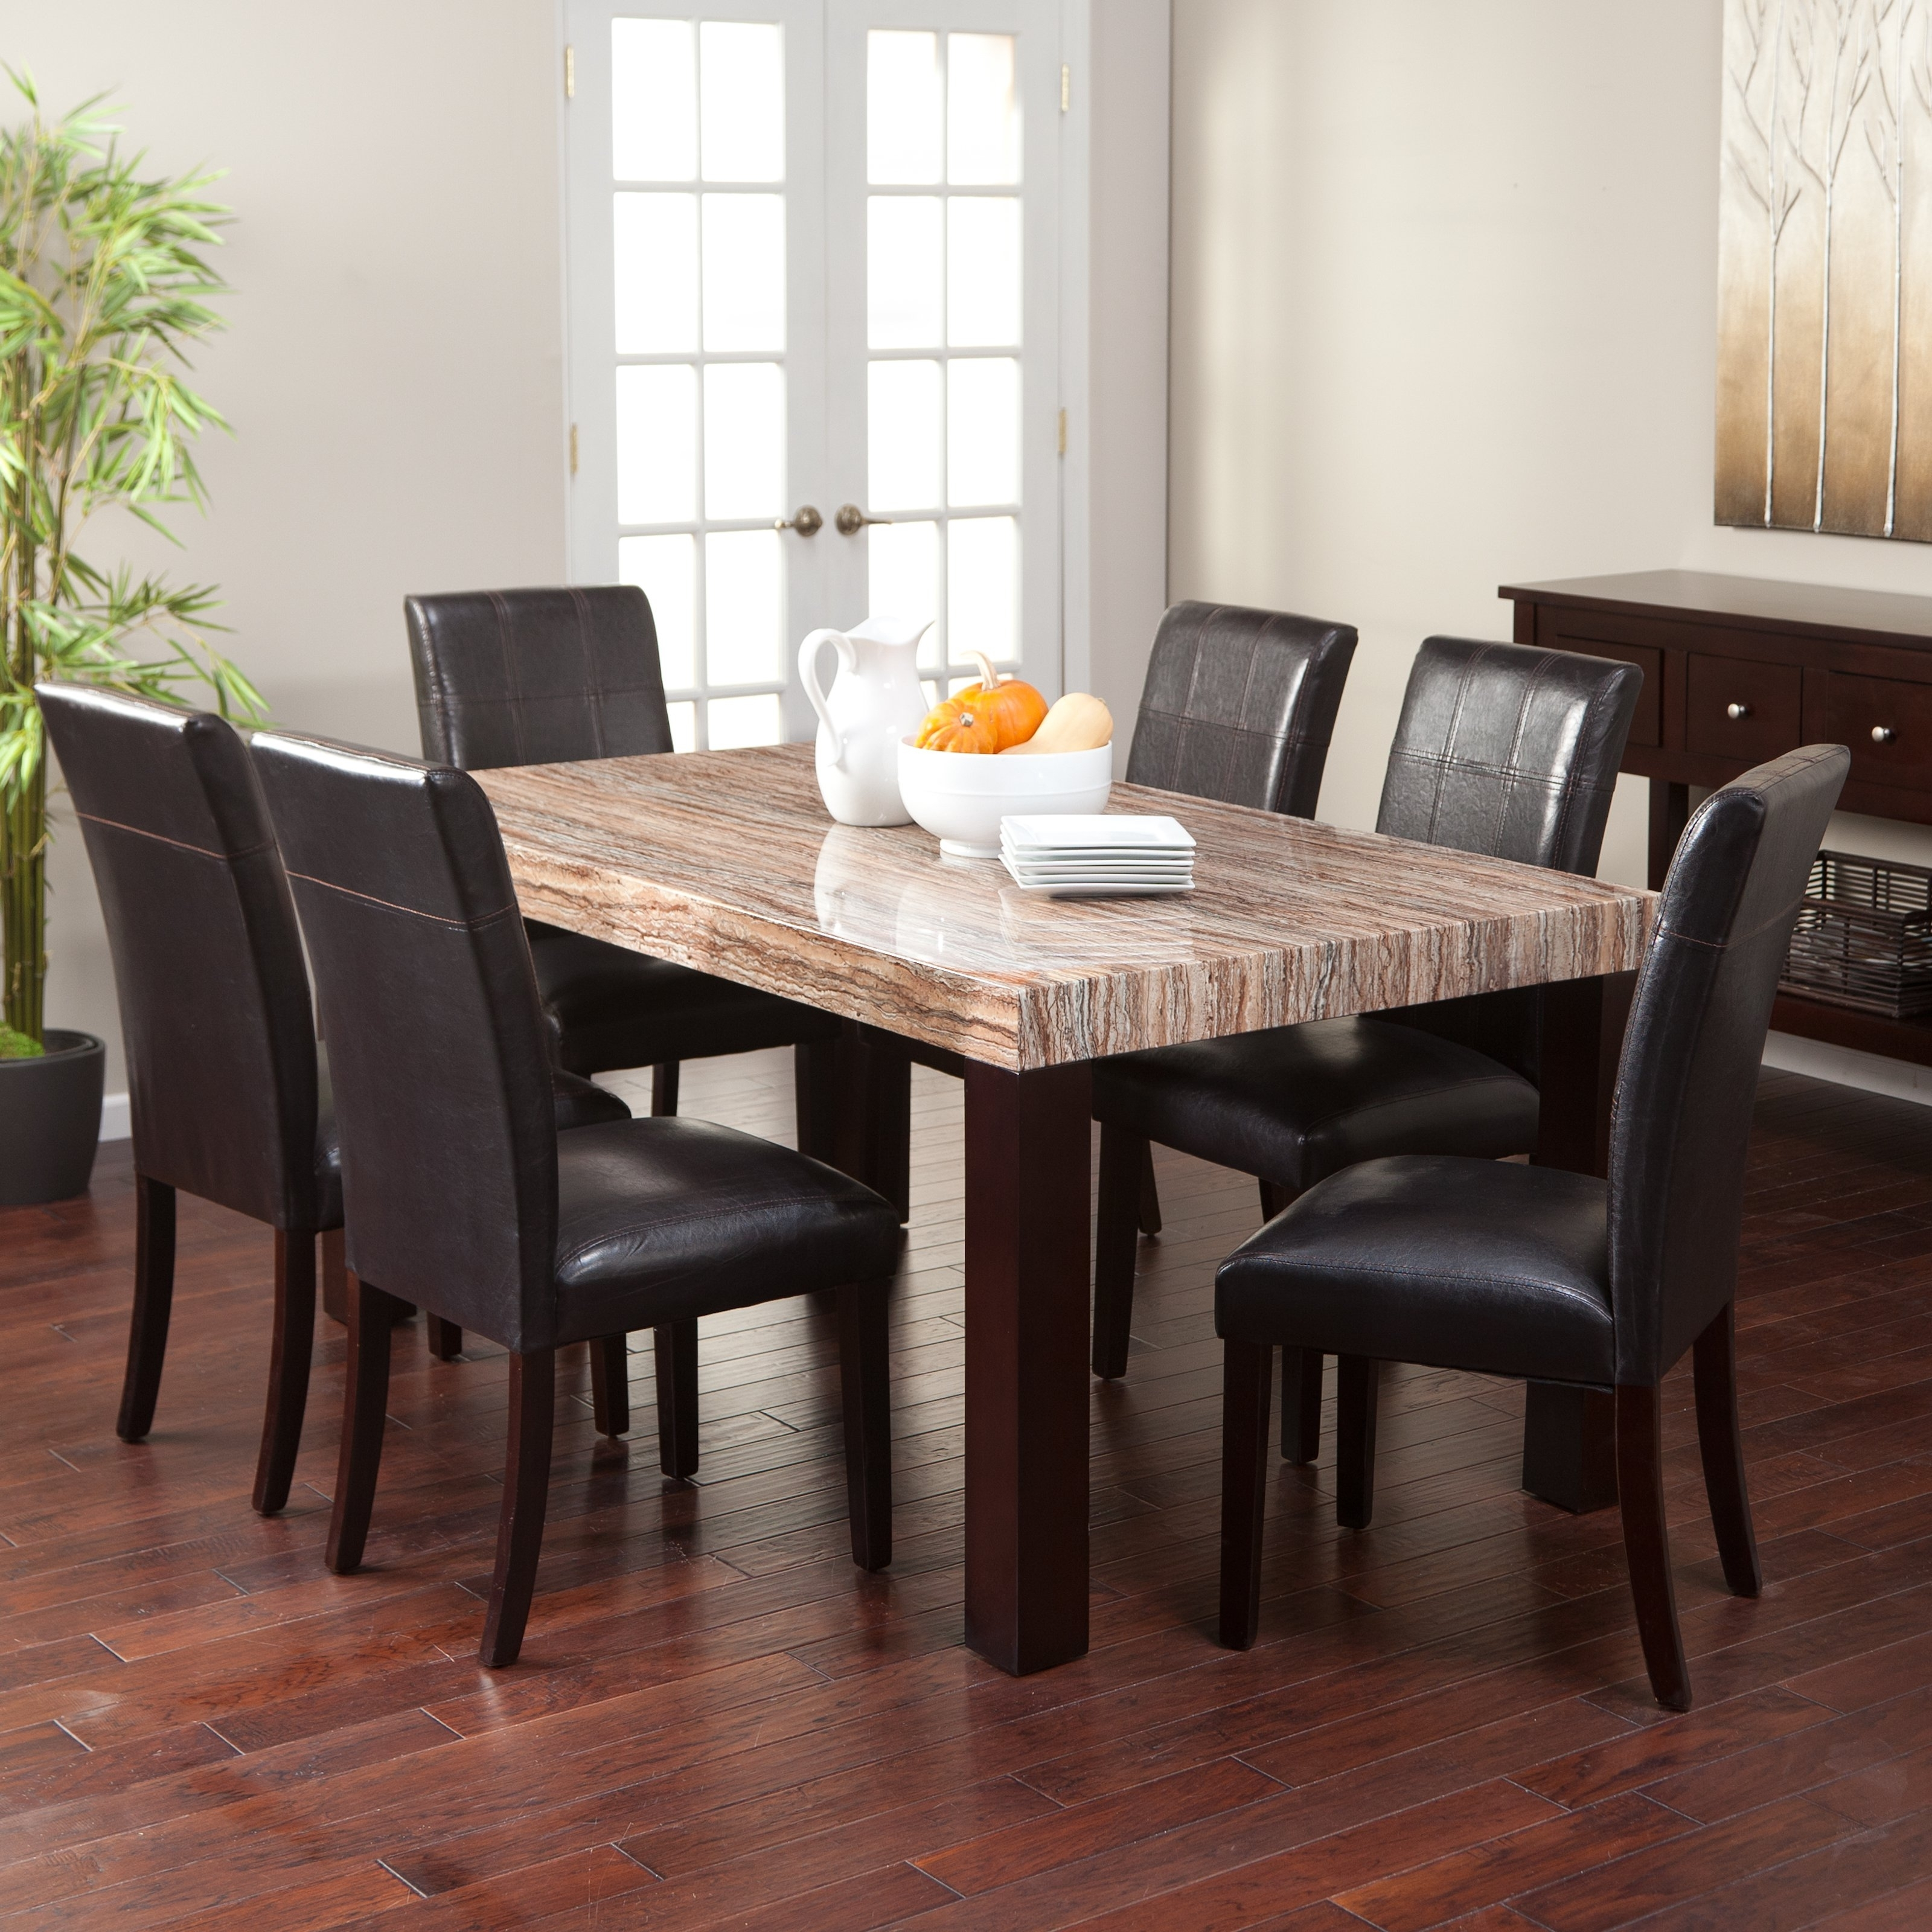 Best And Newest Carmine 7 Piece Dining Table Set (View 15 of 25)